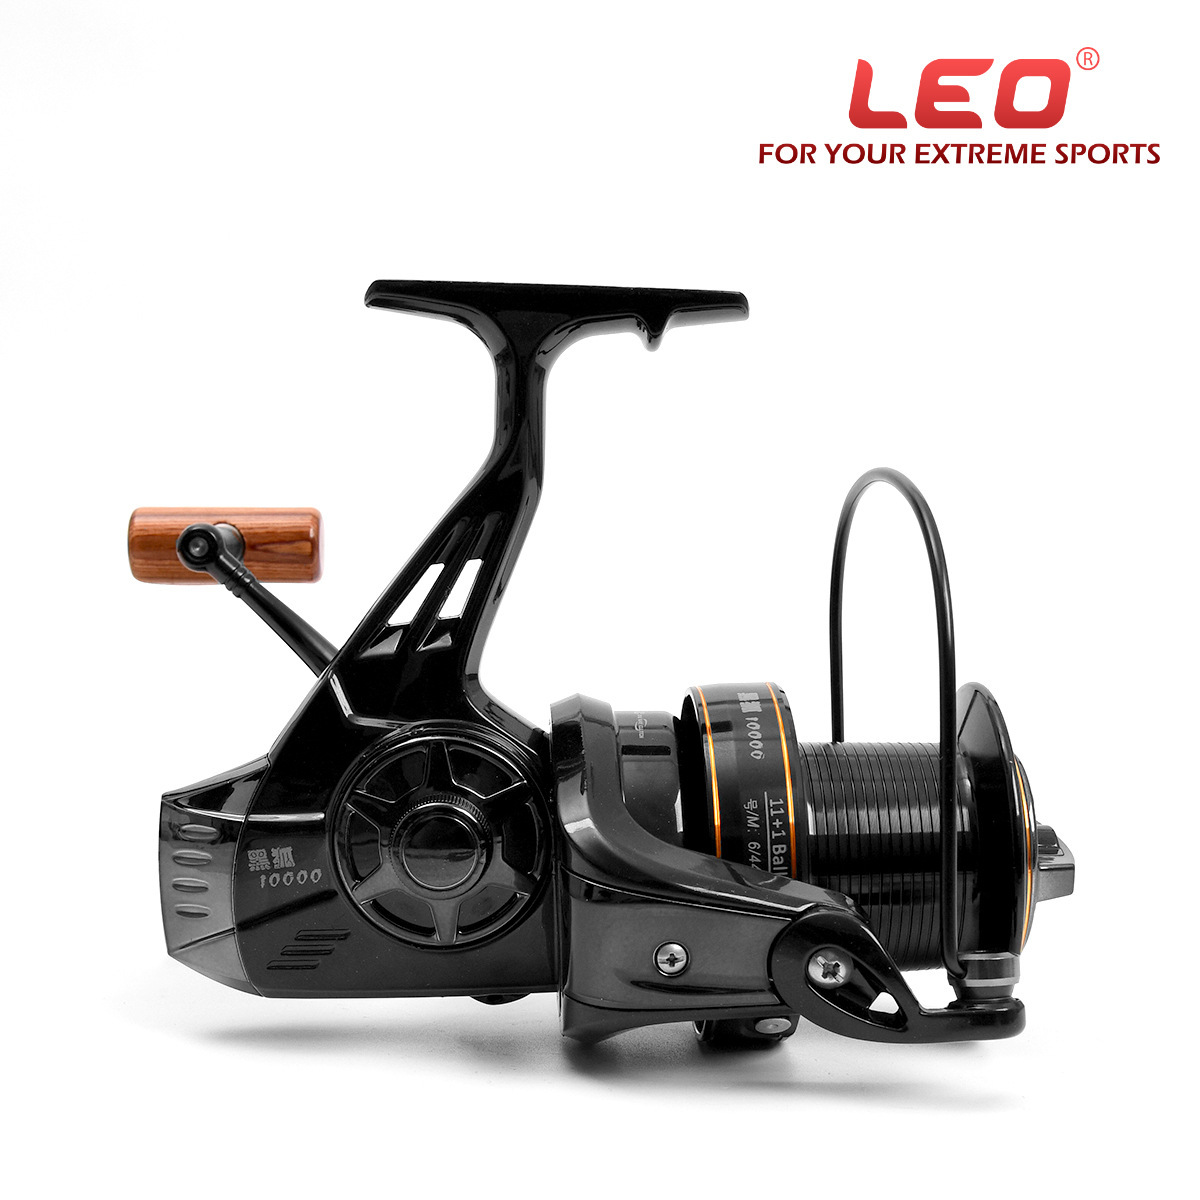 LEO Fishing Reel Spinning Wheel Gear Ratio 4.1:1 Ball Bearing 11+1BB Deep Sea Stainless Steel Fishing Tackle 2018 New Pesca fishing reel new aluminum alloy cnc processing spinning reel 11 1bb stainless steel bearing 25kg max drag sea boat pesca